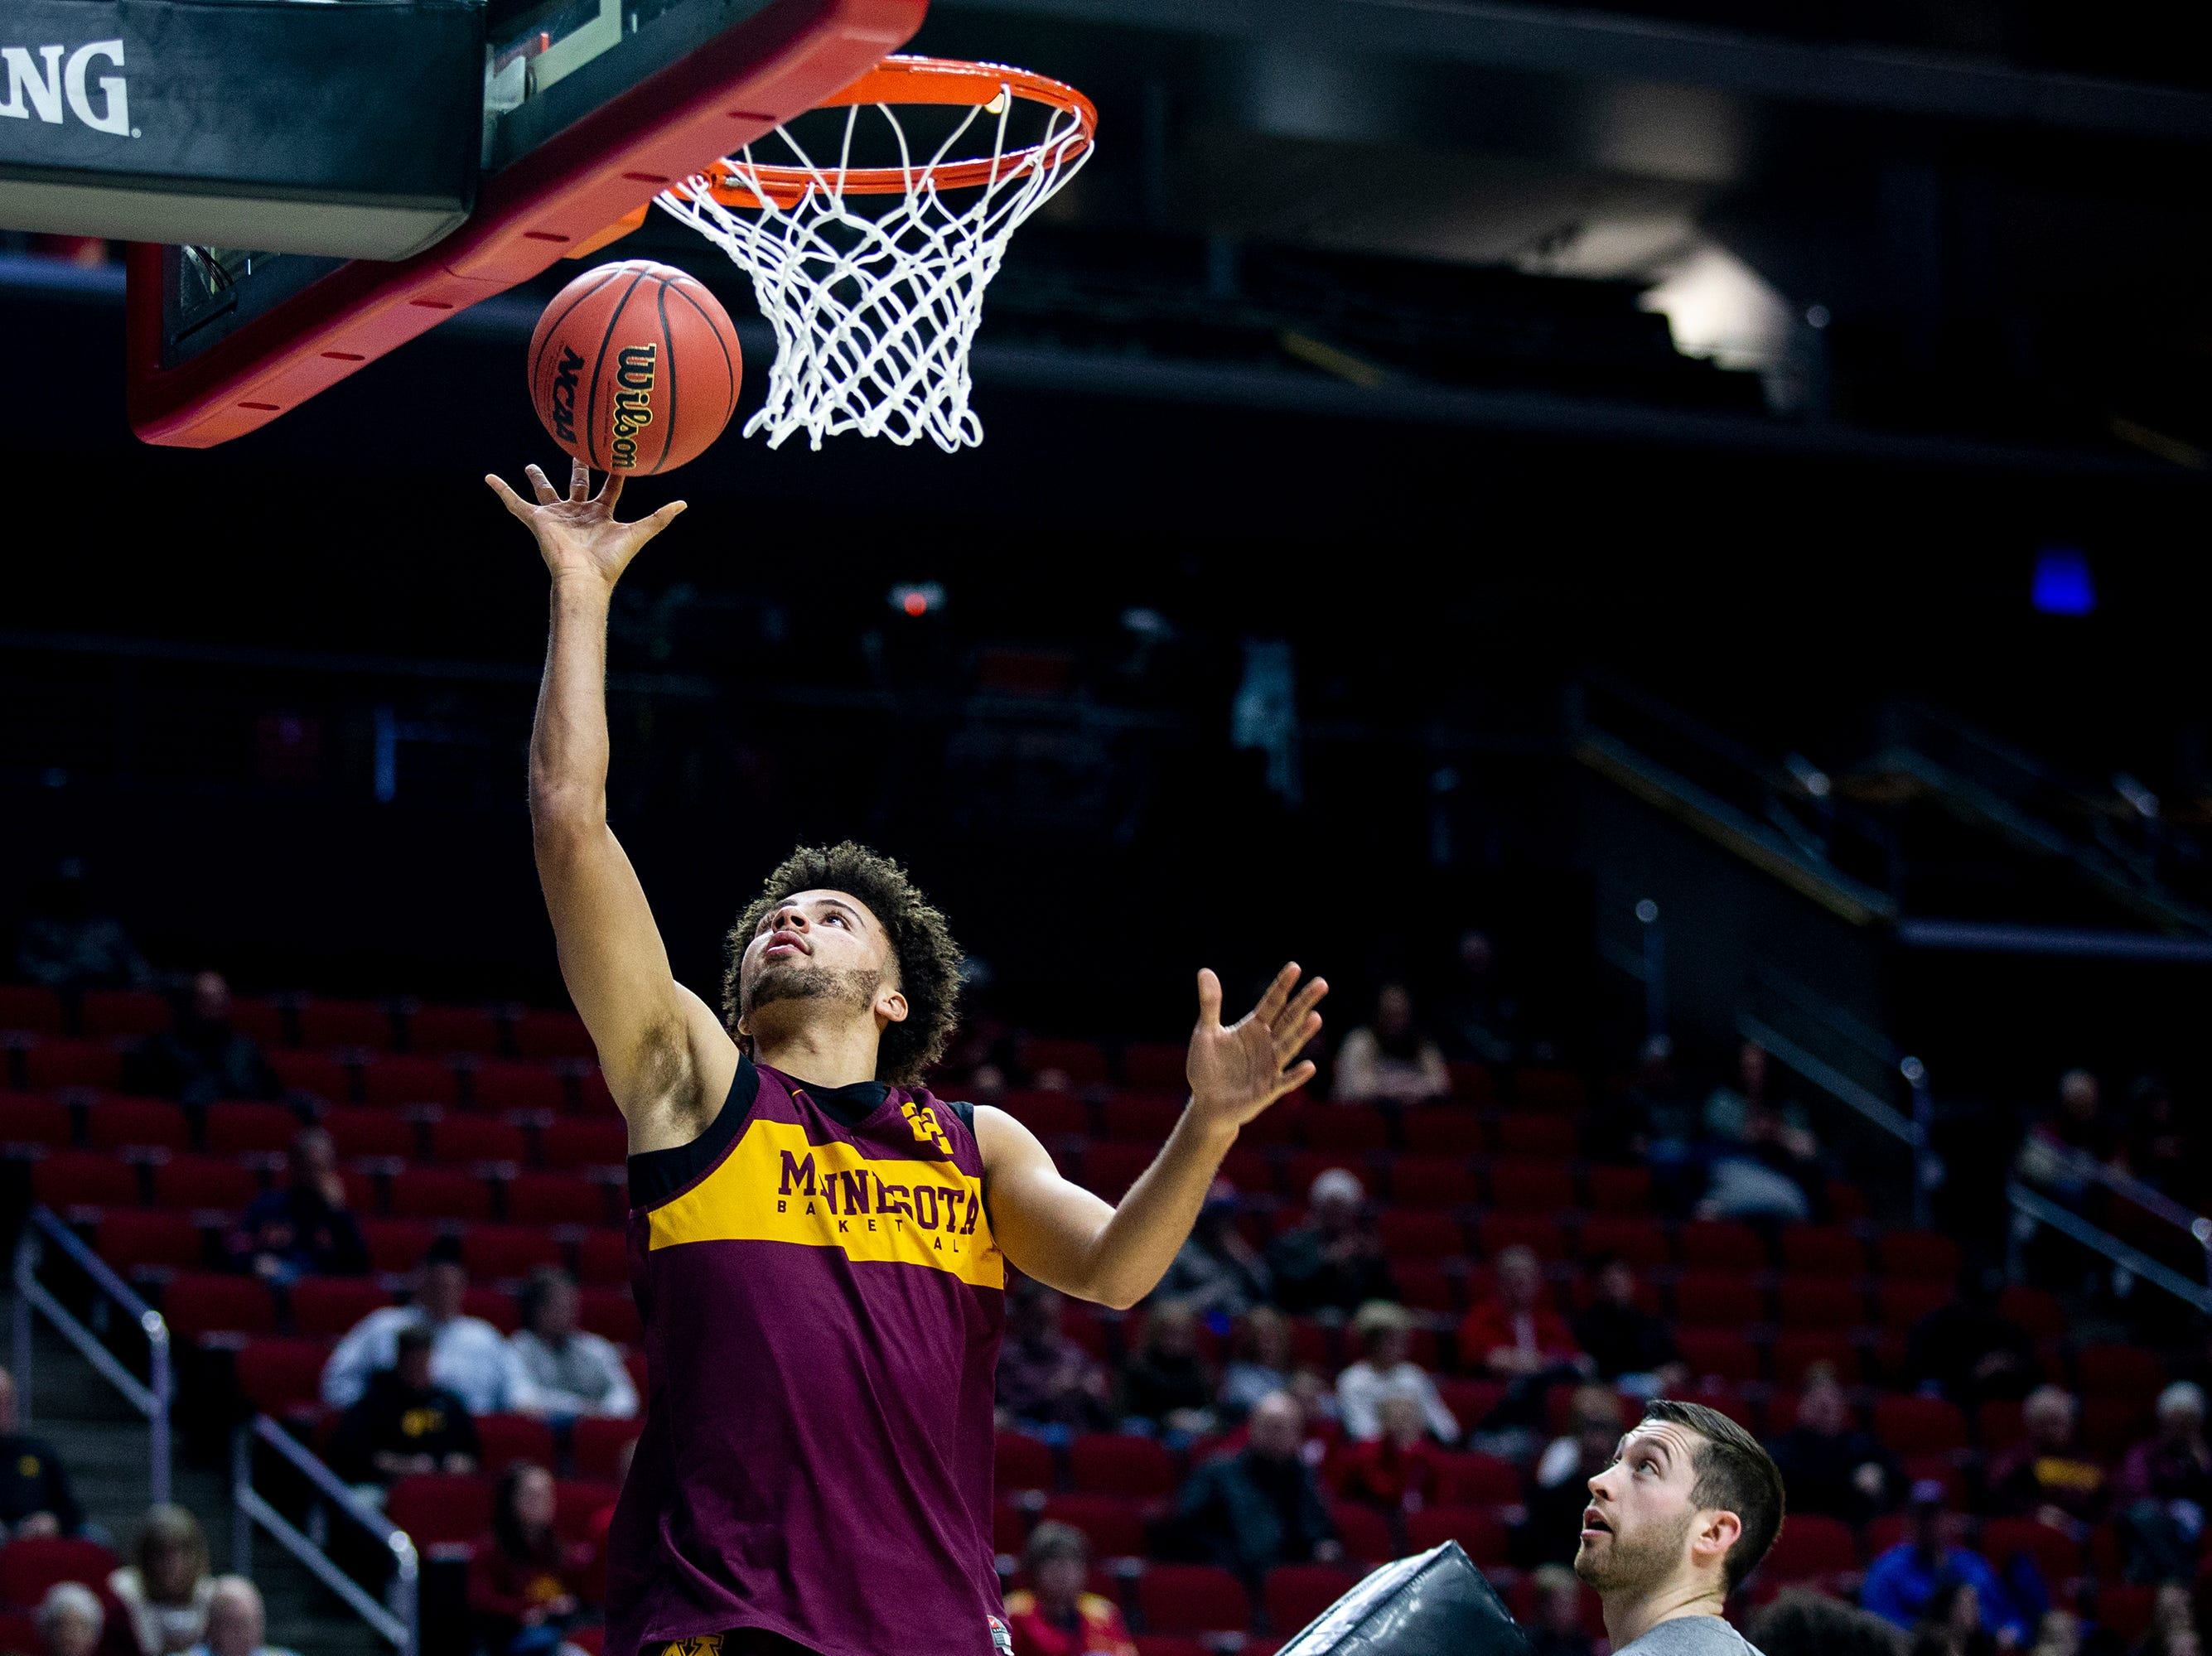 Minnesota's Gabe Kalscheur shoots a lay-up during Minnesota's open practice before the first round of the NCAA Men's Basketball Tournament on Wednesday, March 20, 2019, at Wells Fargo Arena in Des Moines, Iowa. Minnesota will face Louisville in the first round on Thursday.